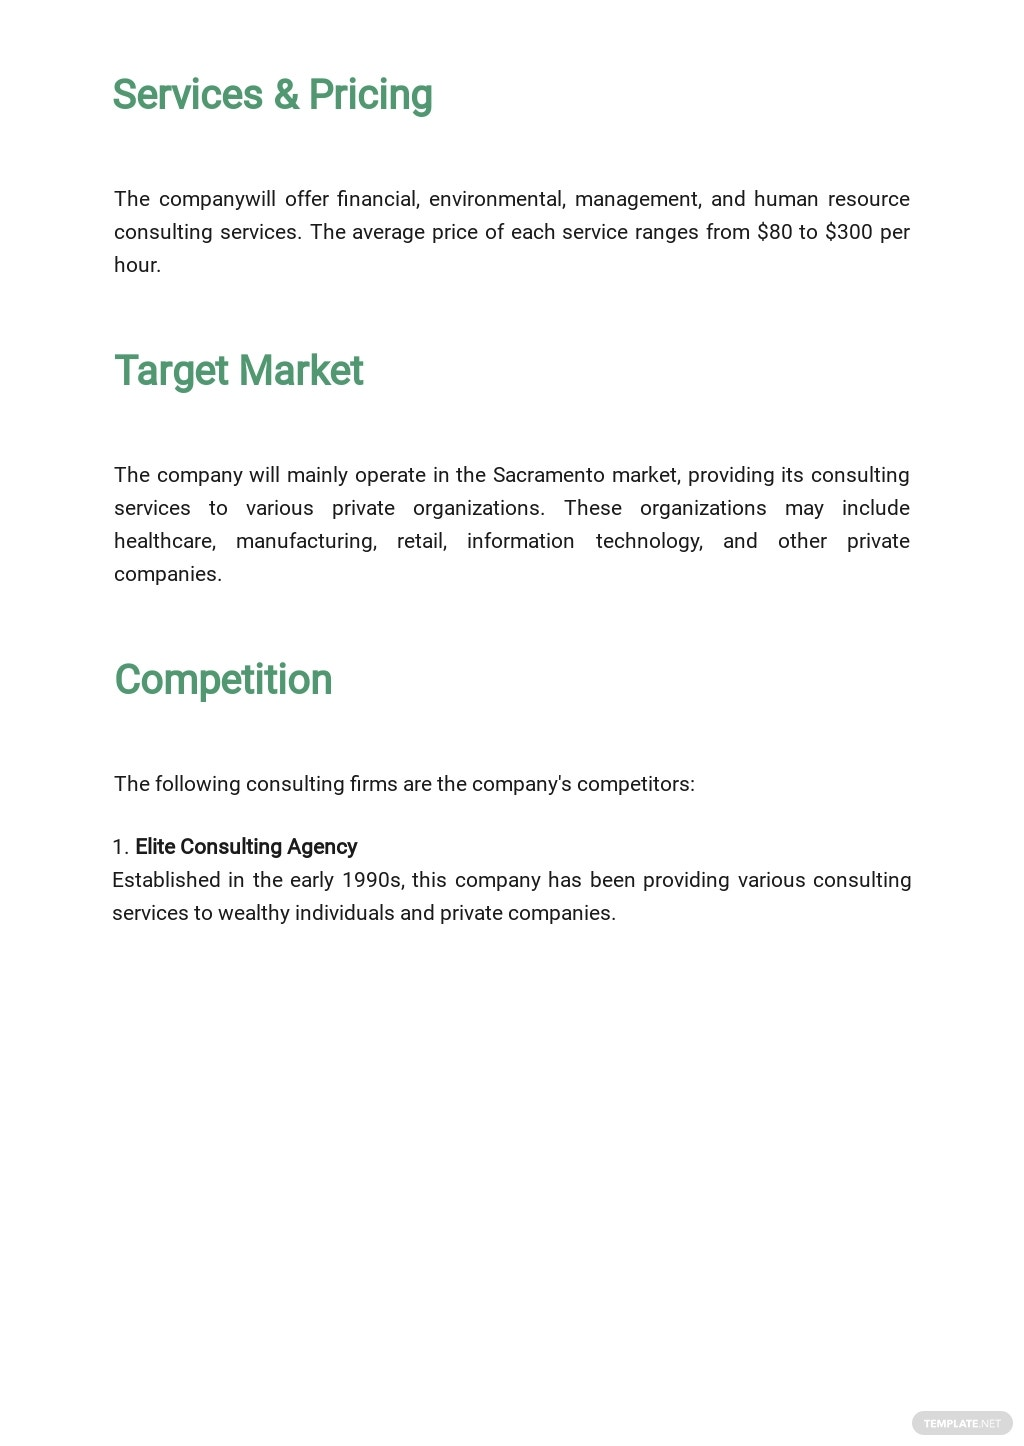 Consulting Business Plan Template 2.jpe